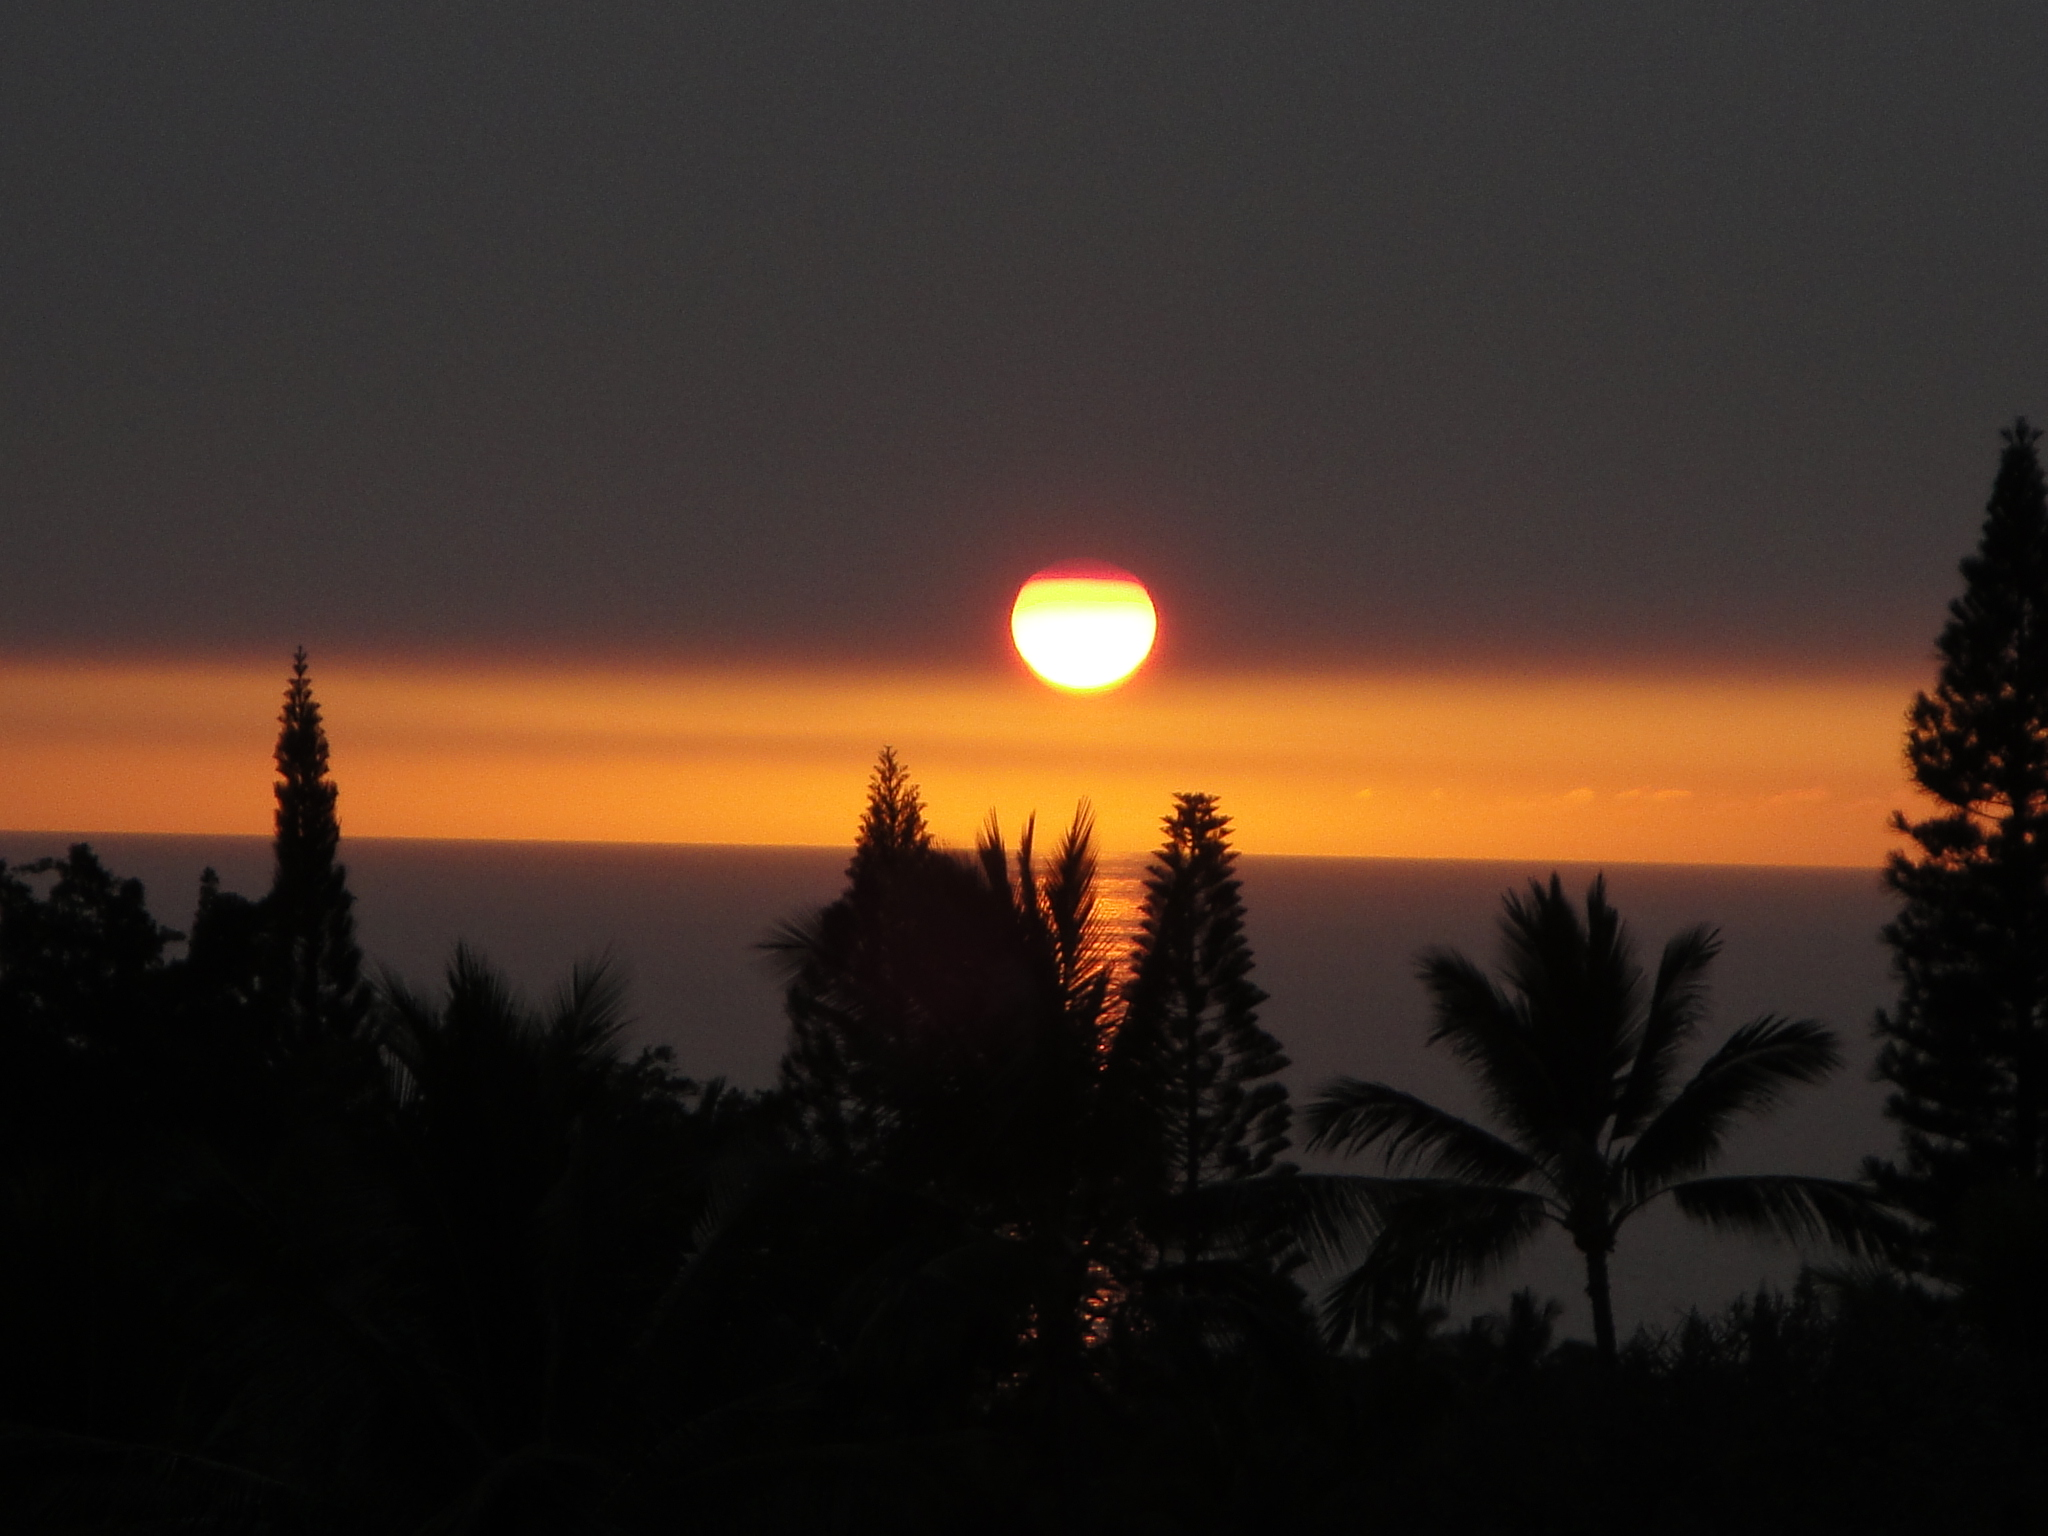 Sunset - Maybe you will see the green flash